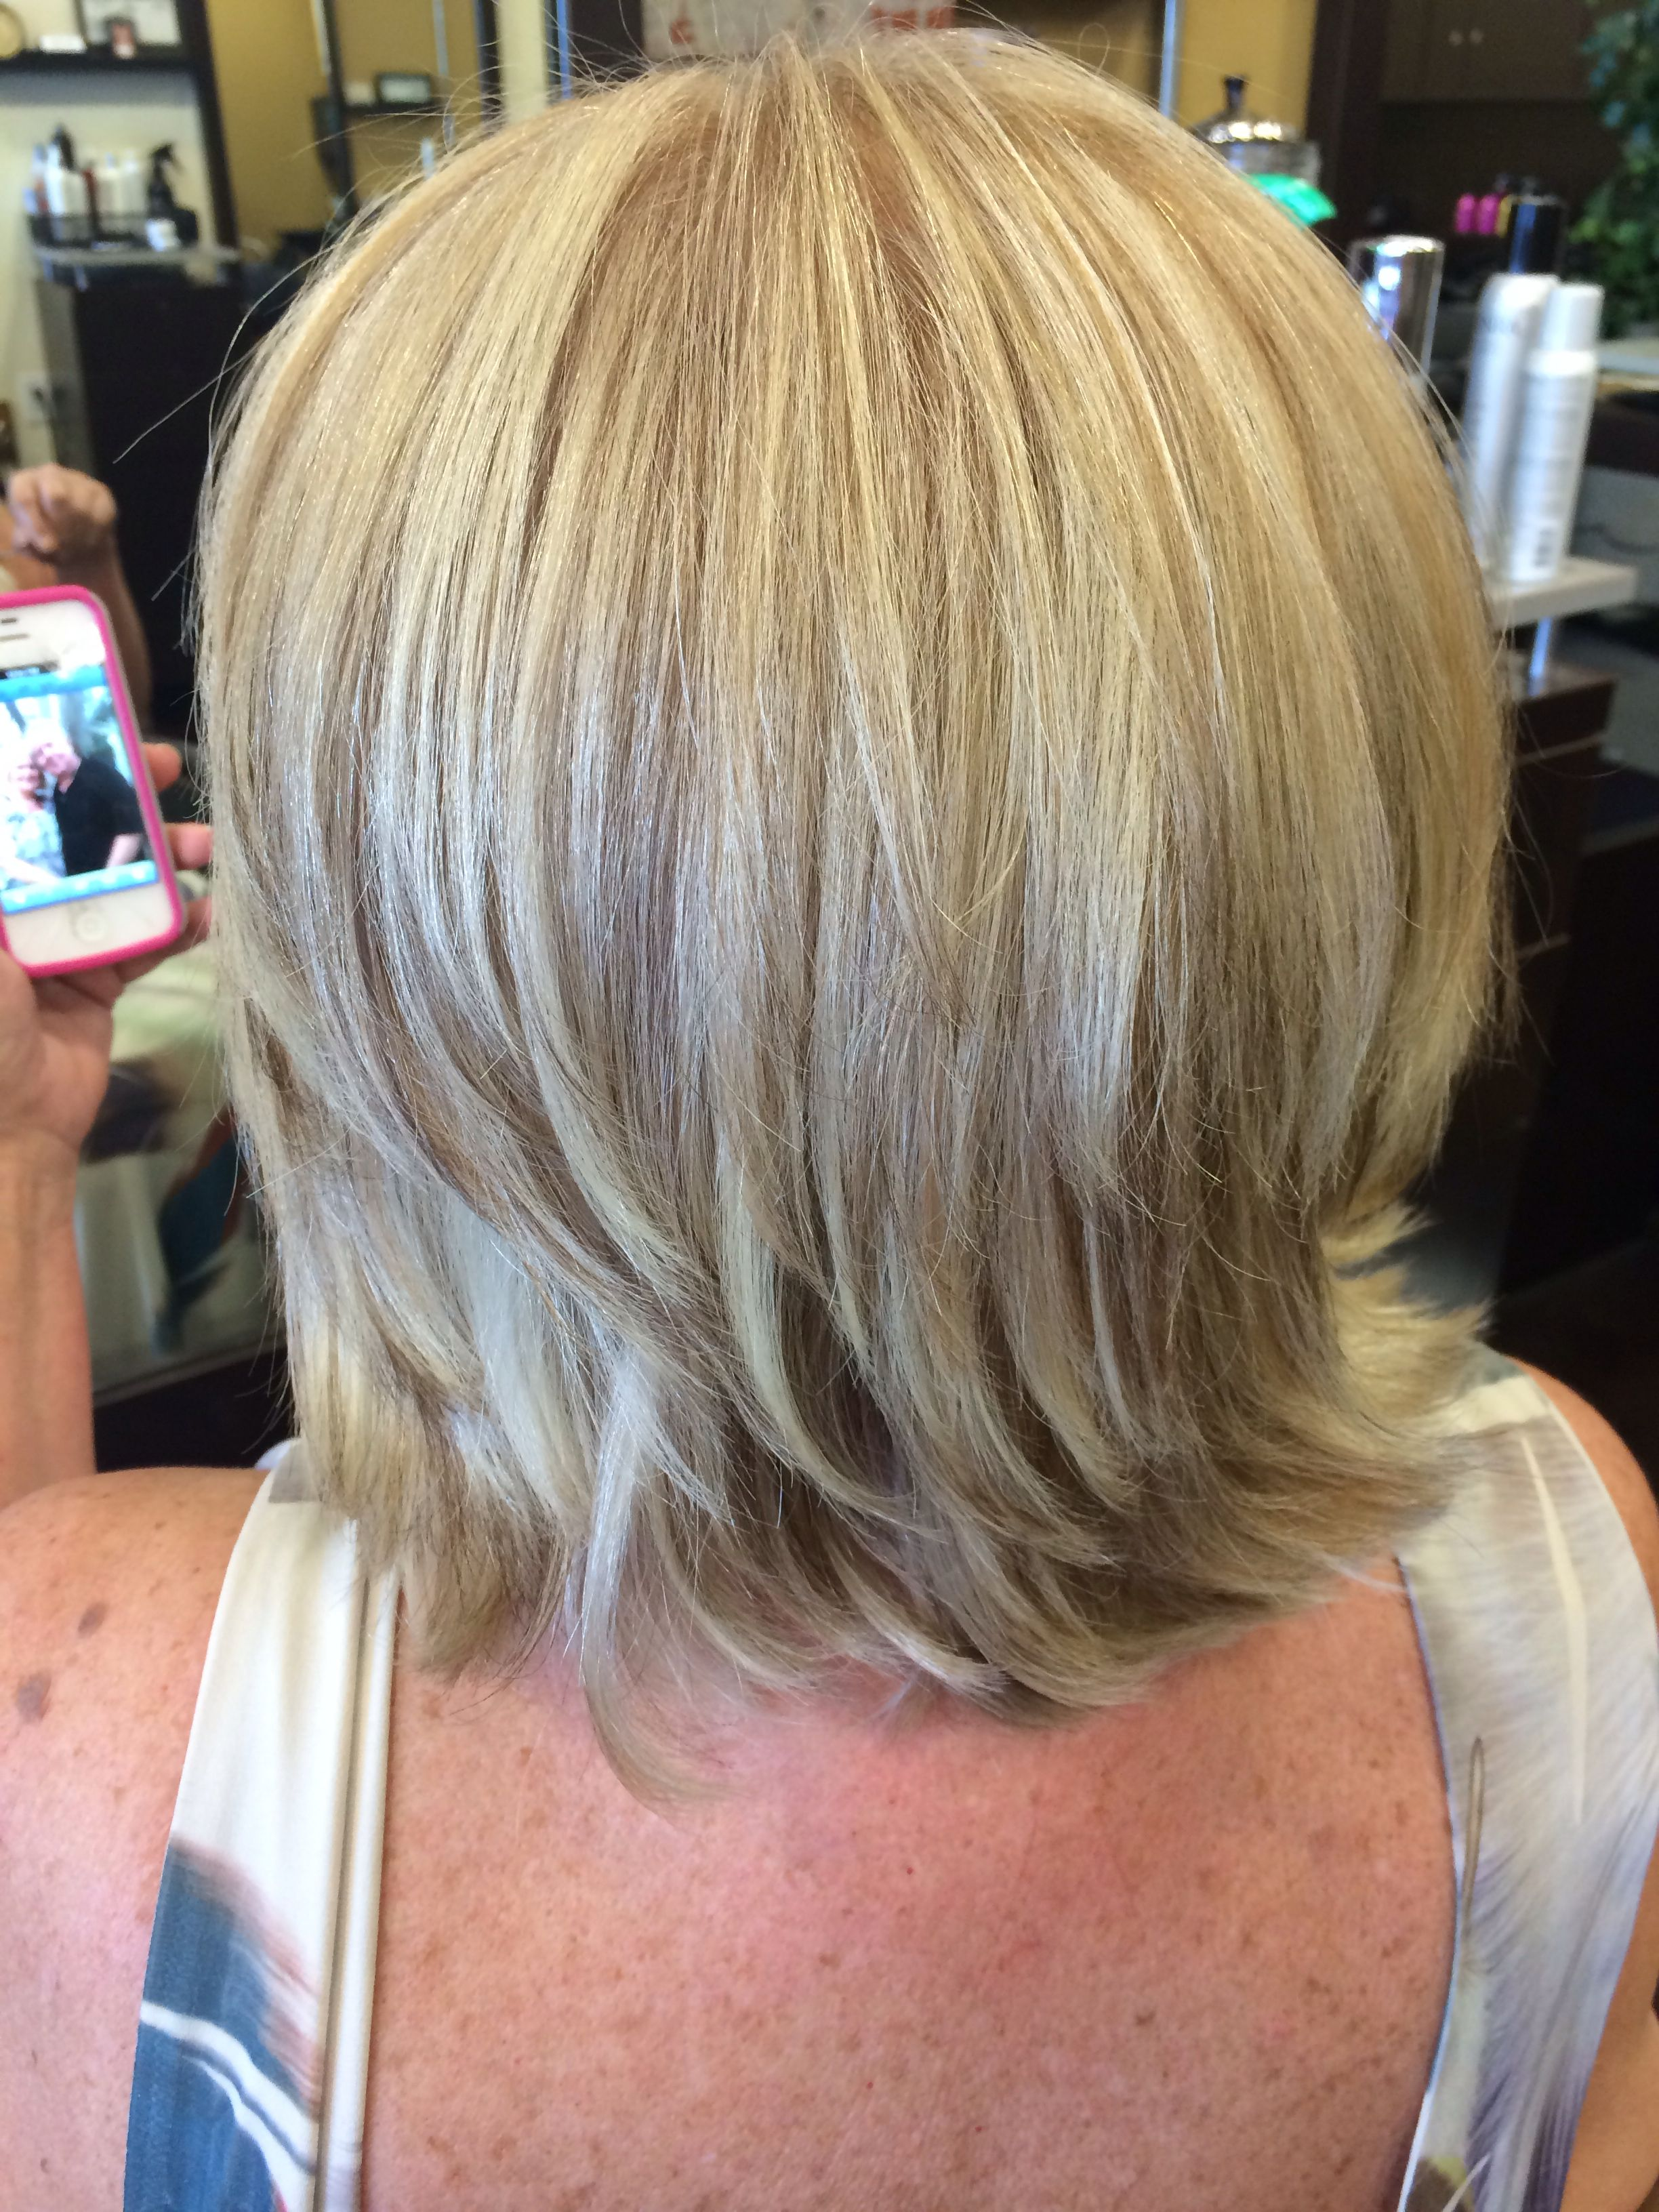 Not Quite Enough Contrast In The Highlights Over 60 Hairstyles Hair Color For Women Warm Hair